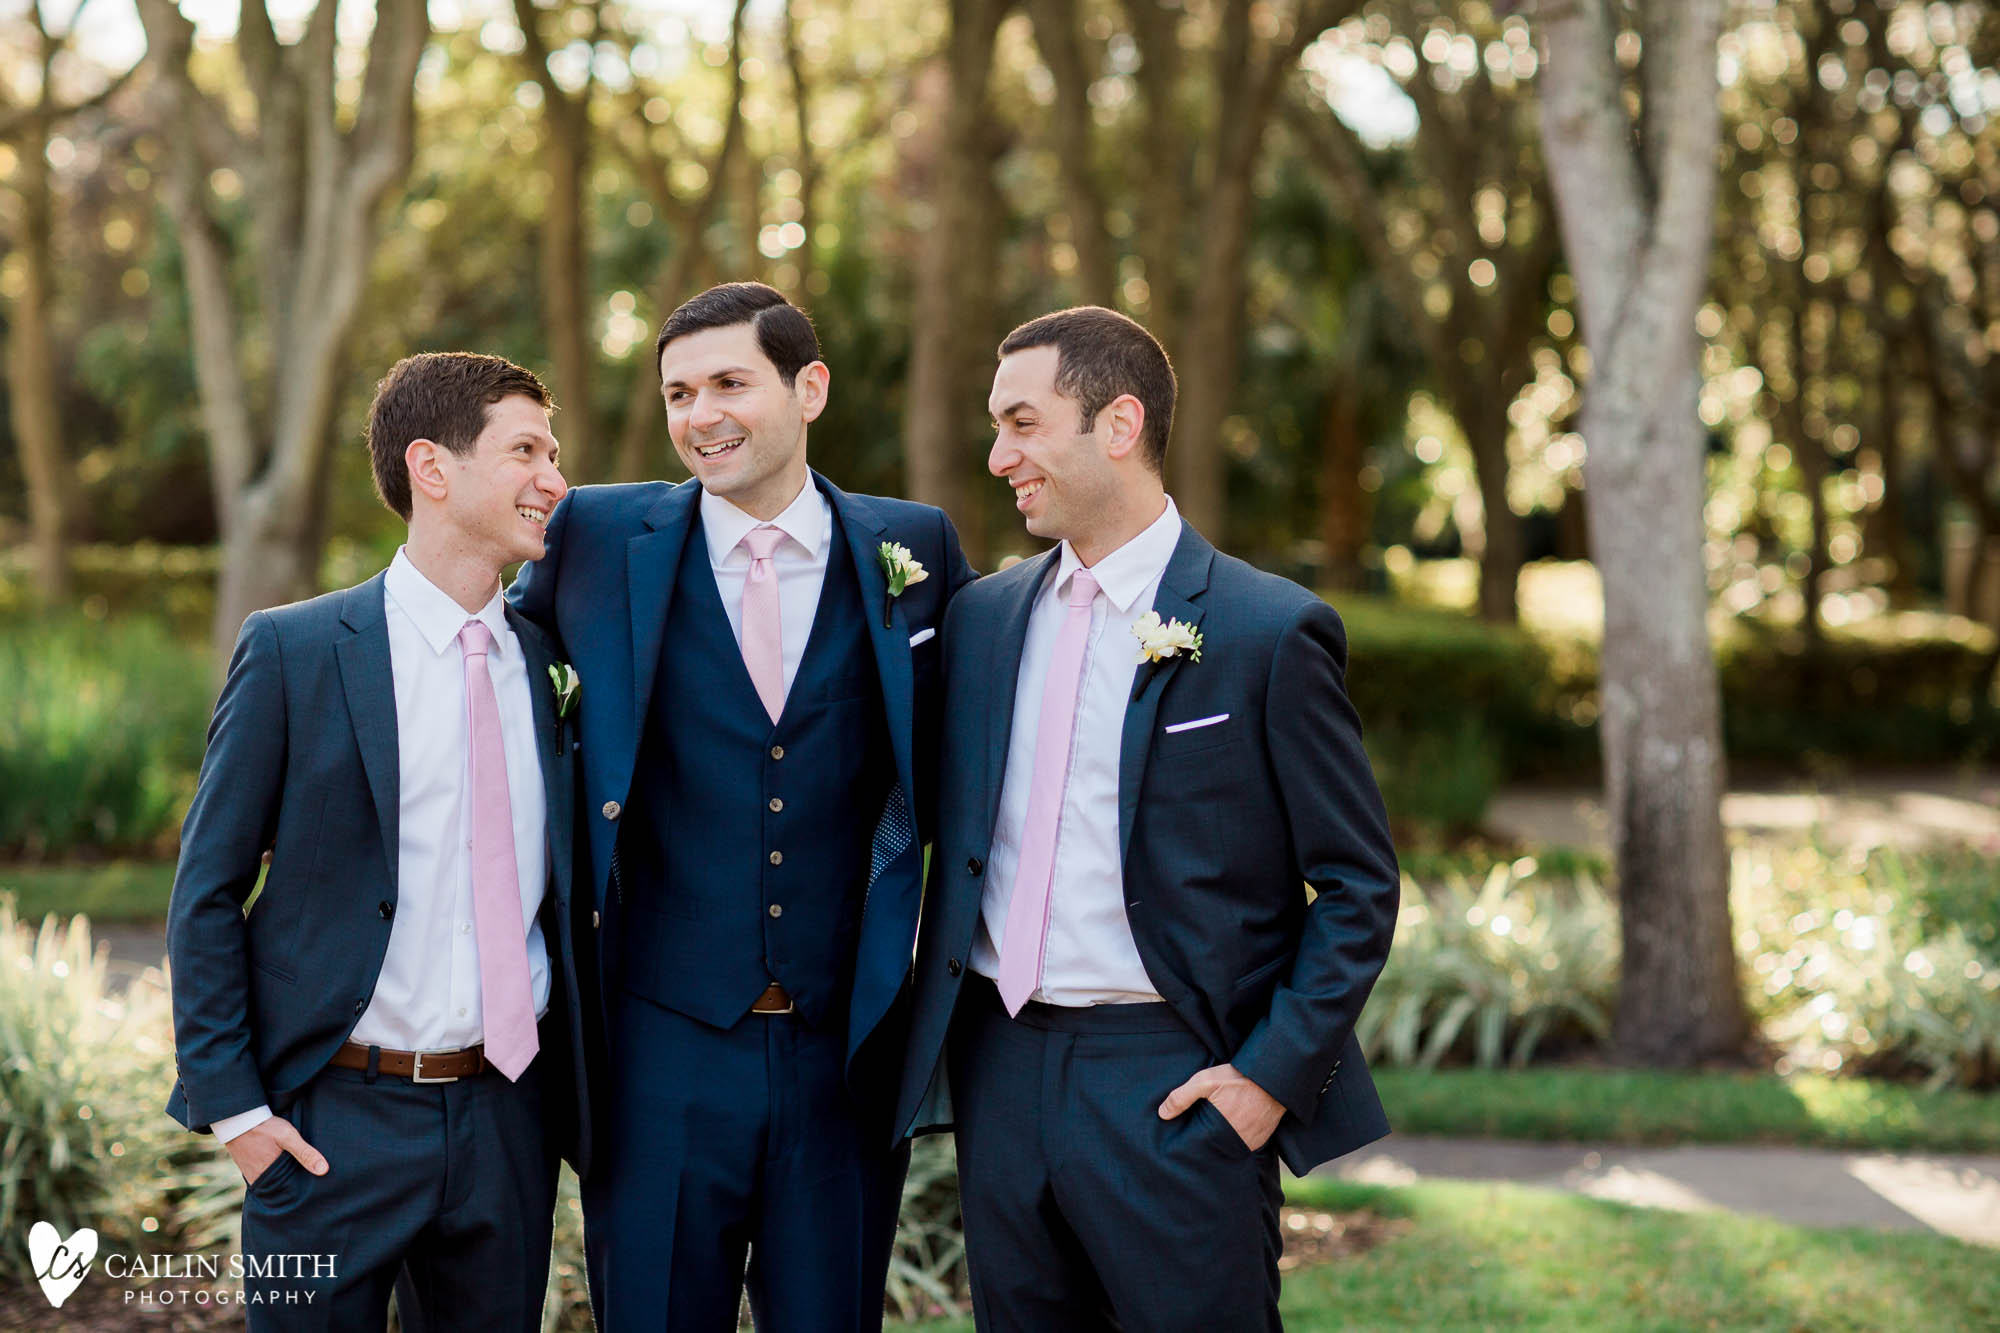 Hallie_Ari_Ritz_Carlton_Amelia_Island_Wedding_Photography_0048.jpg